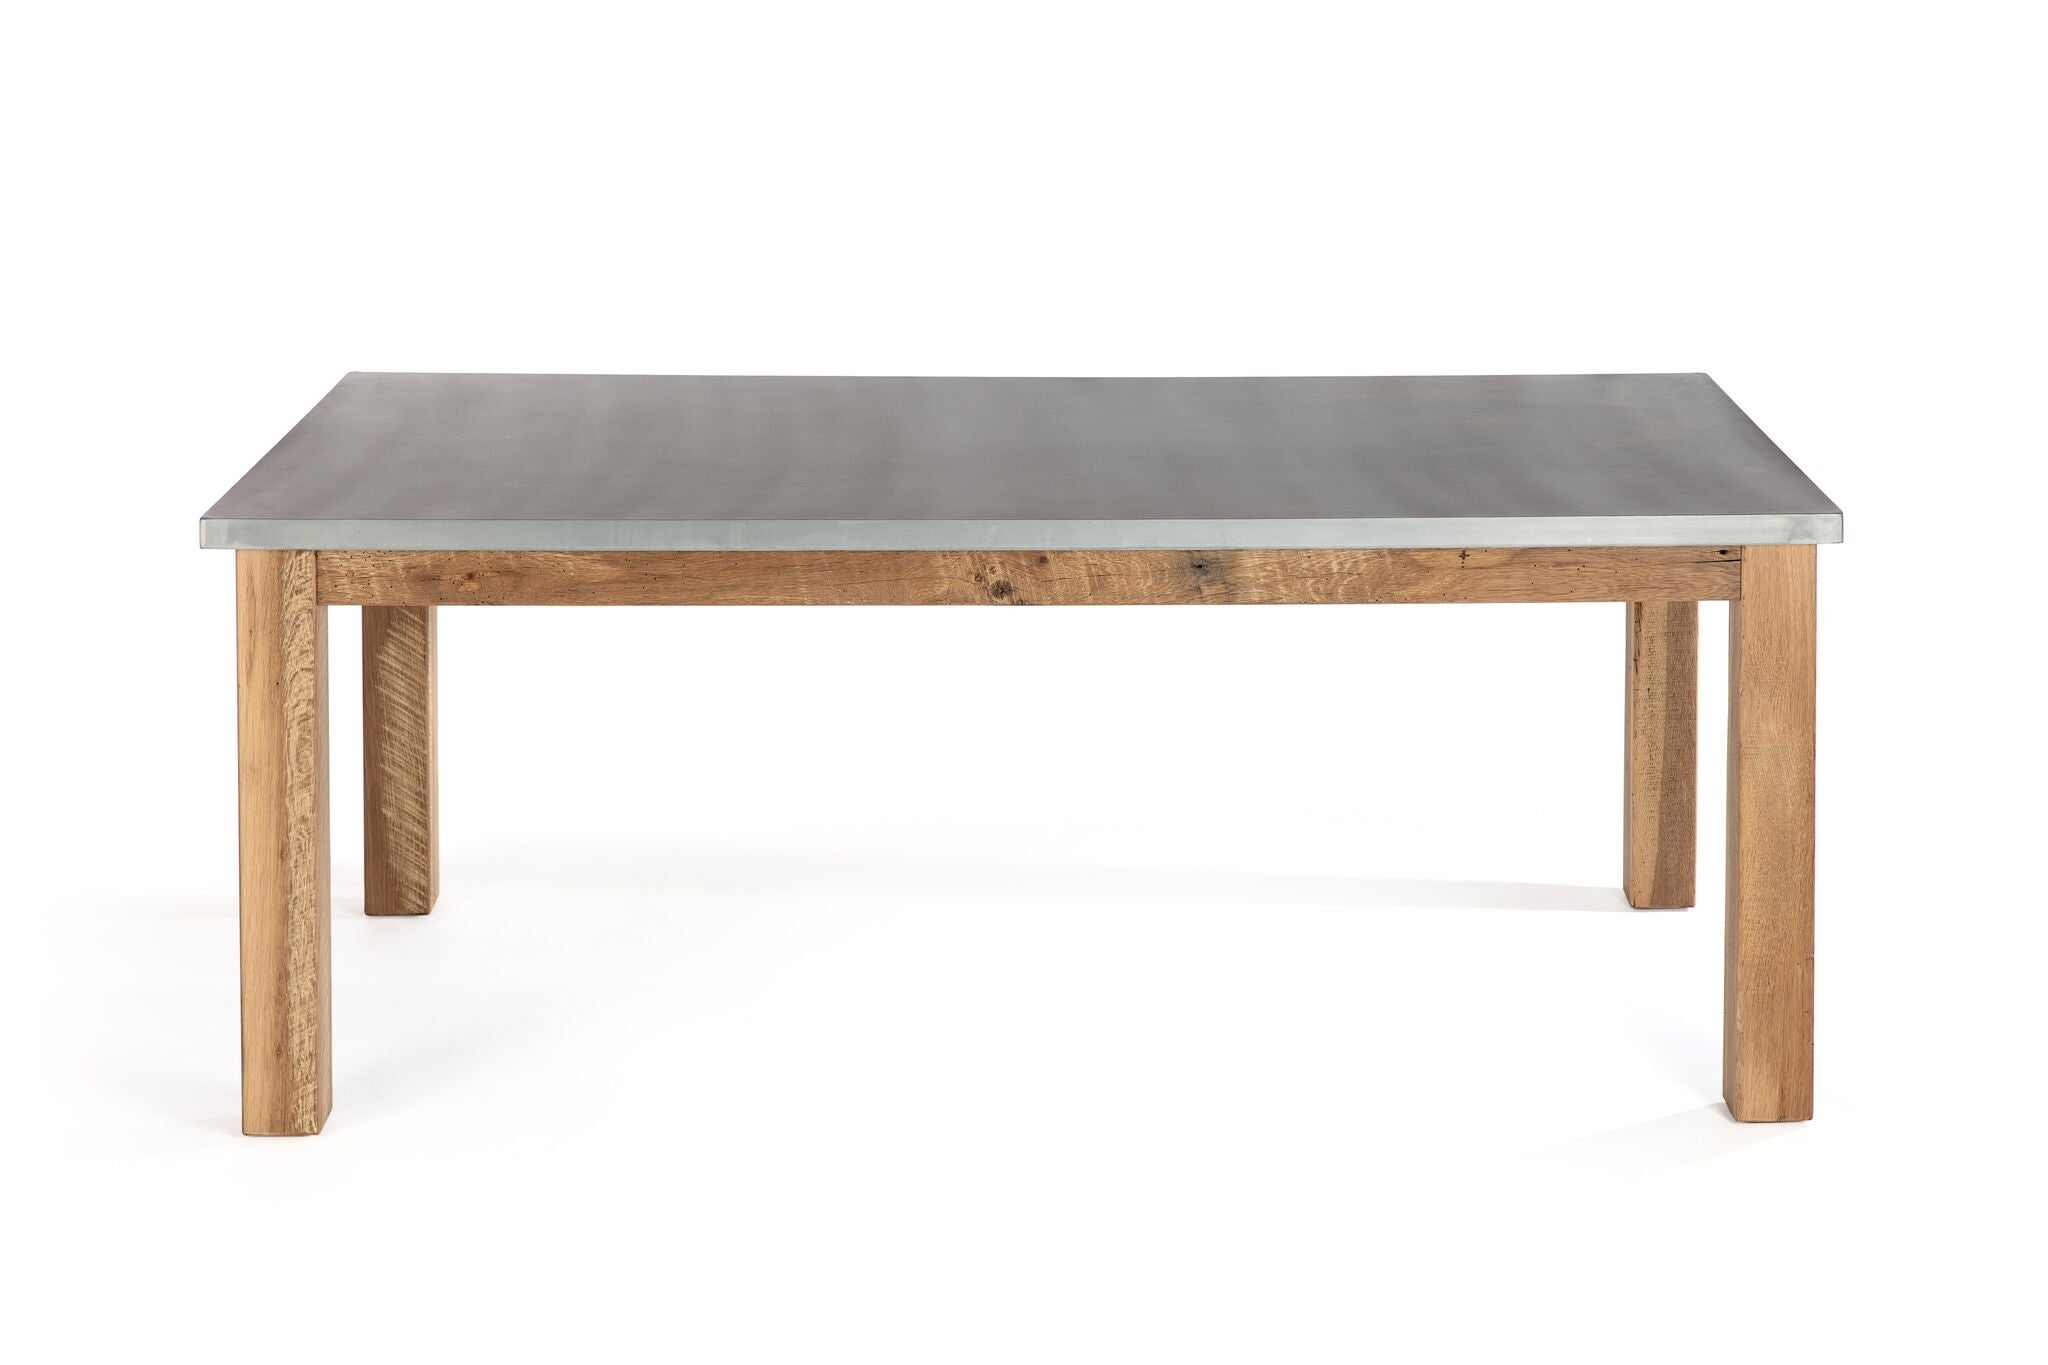 "Zinc Rectangular Table | Parsons Zinc Table | CLASSIC | Weathered Grey on Reclaimed Oak | 72""L 37""W 30""H 